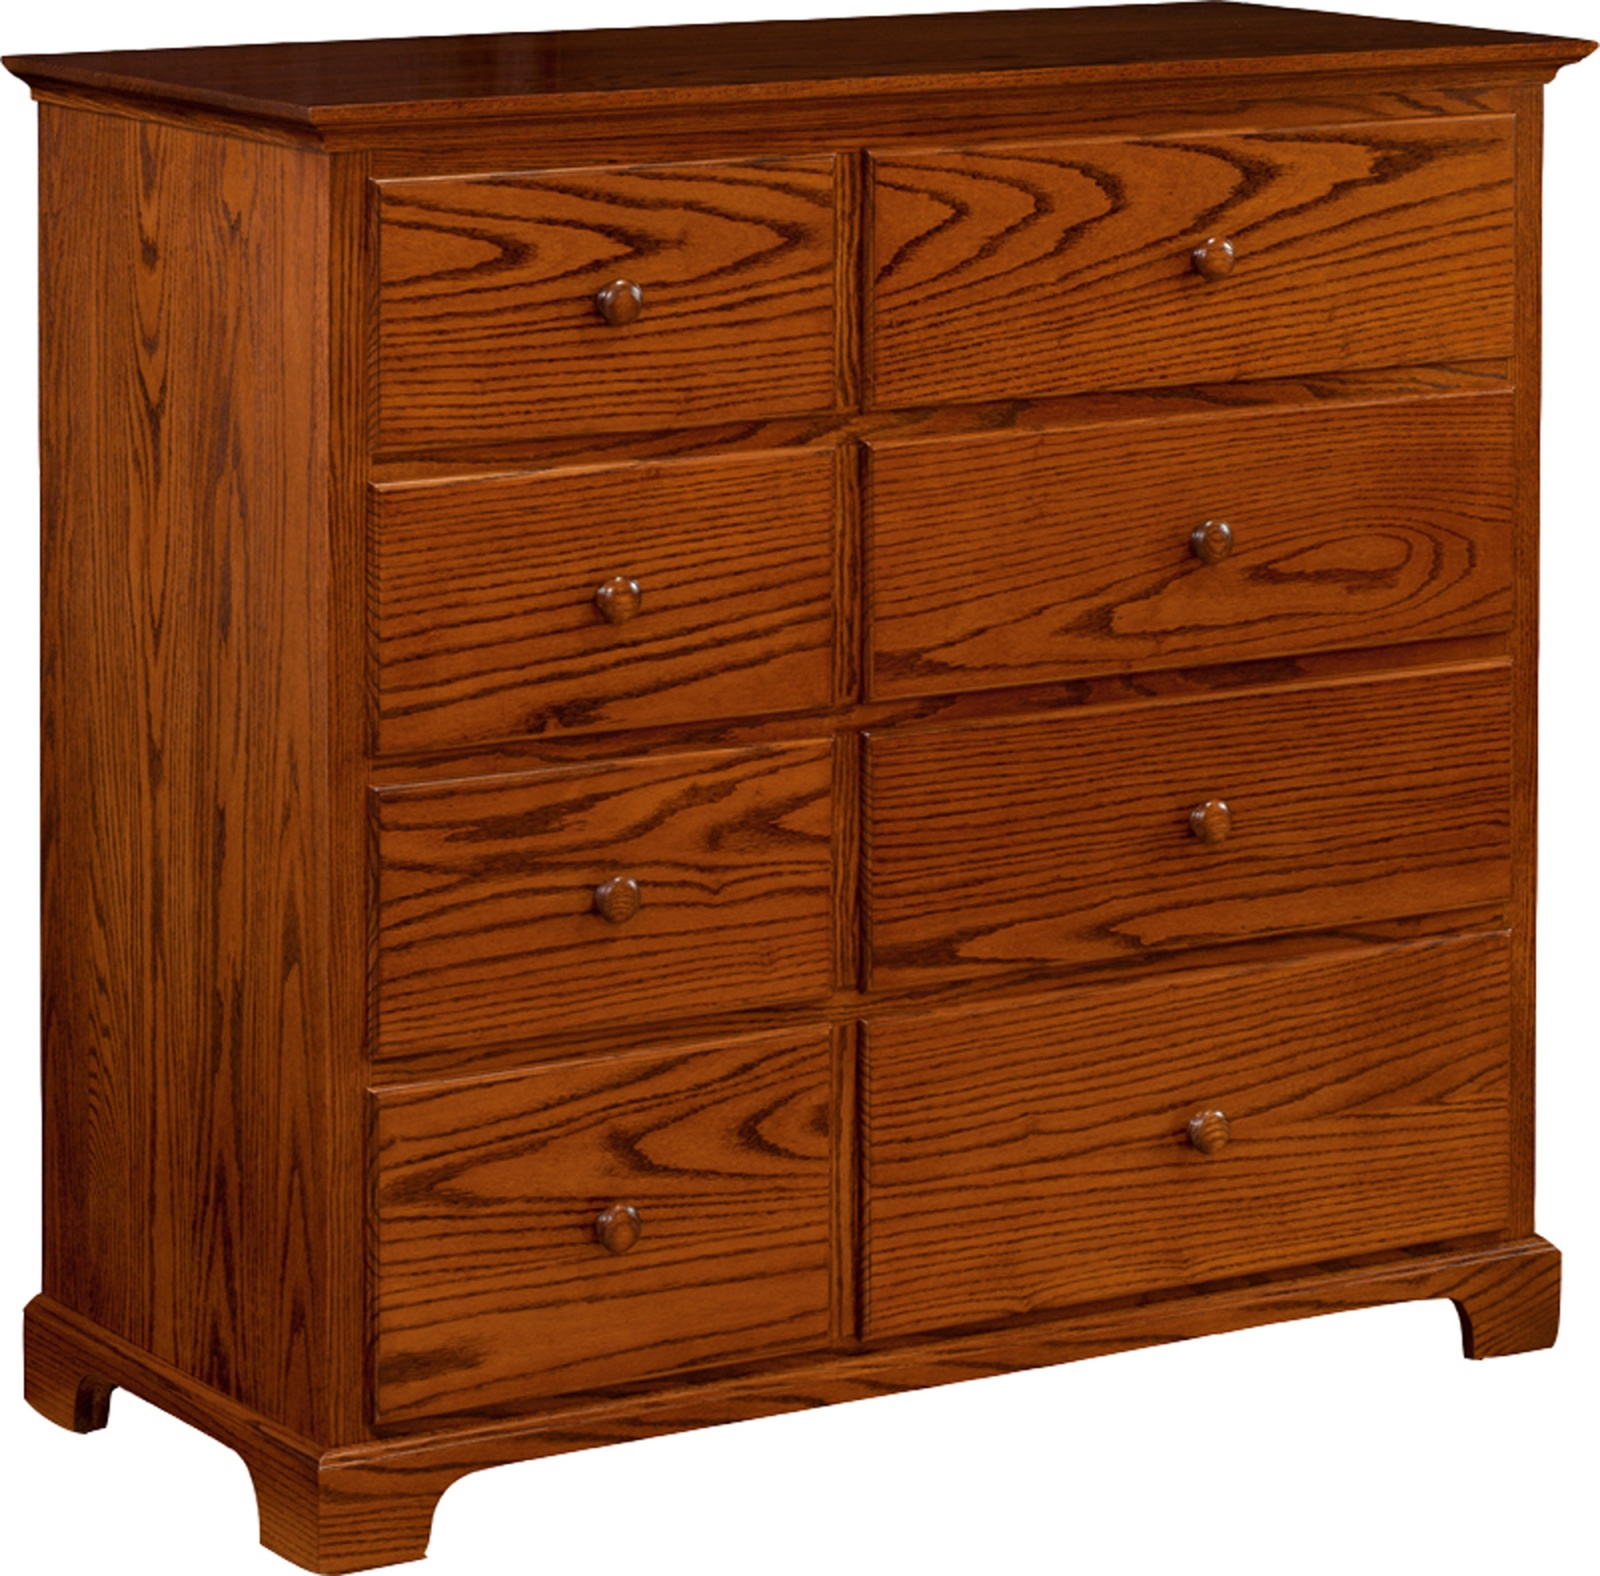 SO-141 8 Drawer Chest.jpg